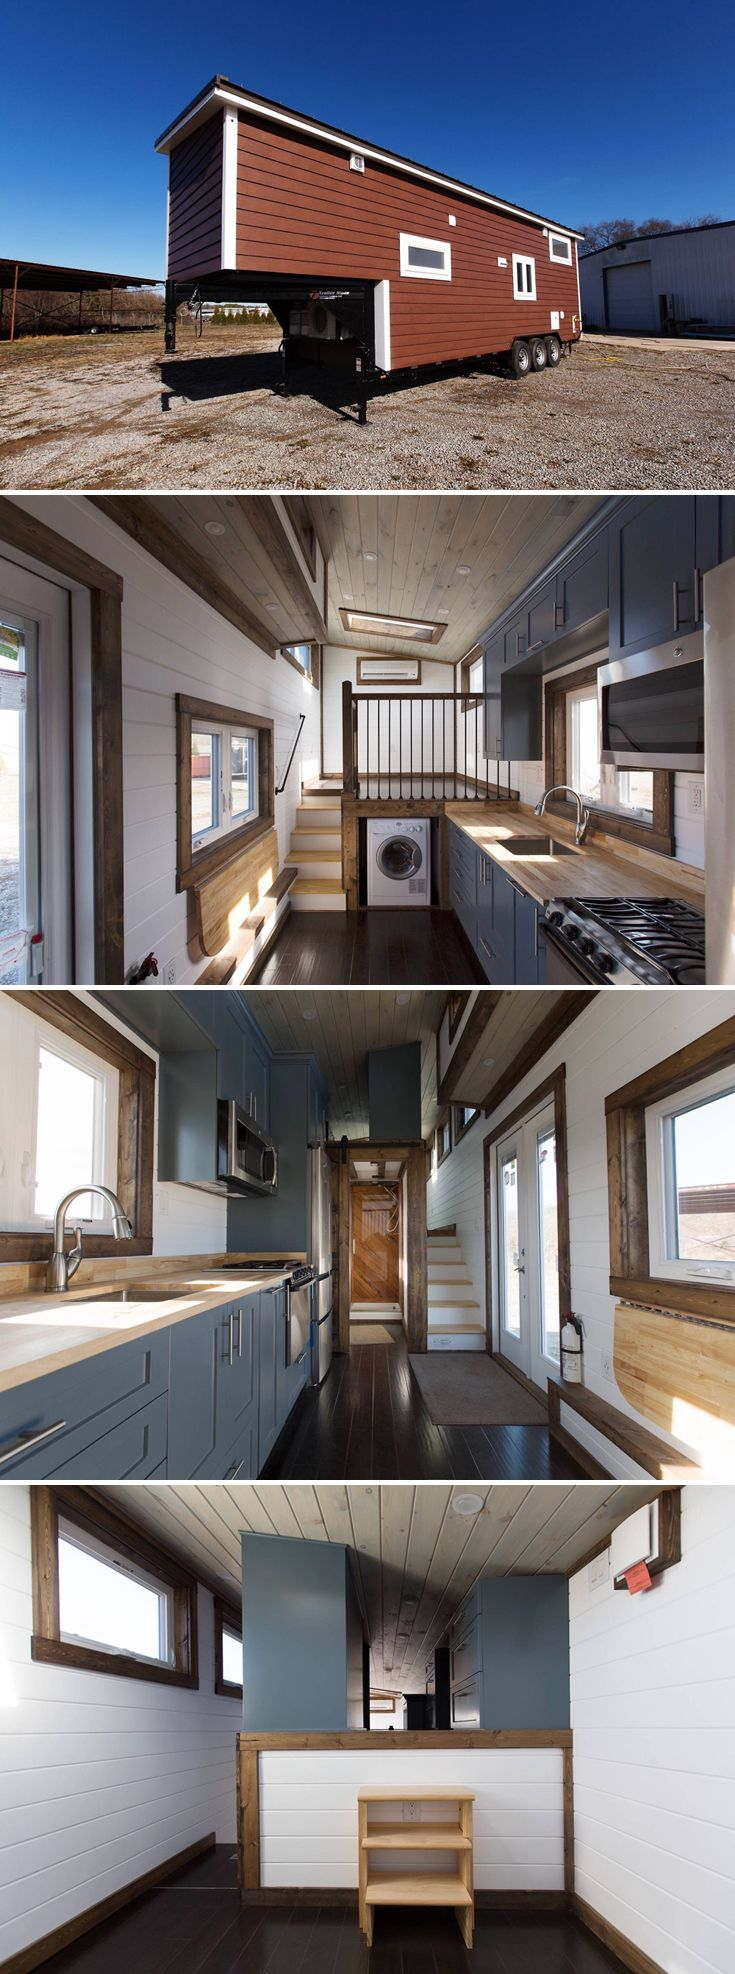 """The Lookout v2 was built by Tiny House Chattanooga. It's based off their award-winning Lookout that won """"Best in Show"""" at the 2016 Tiny House Jamboree."""